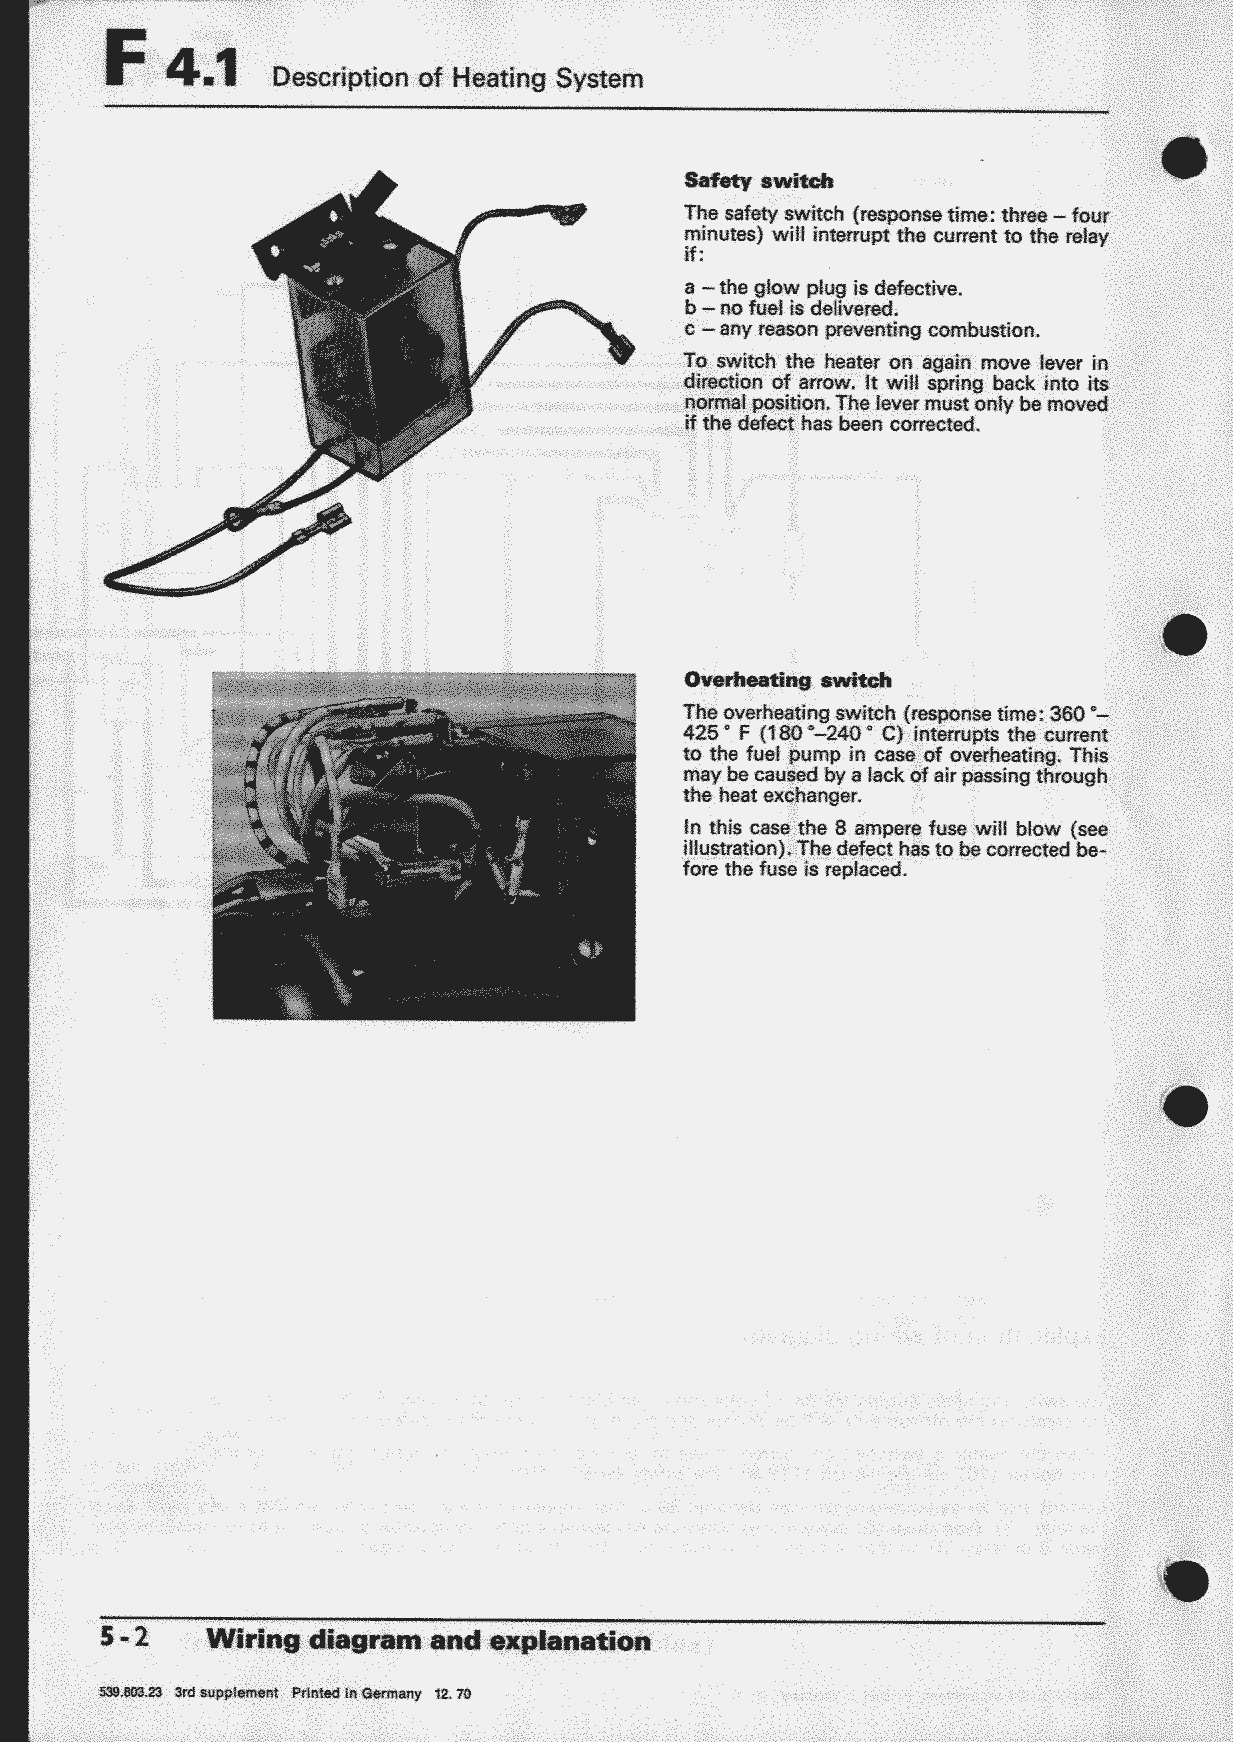 Obsolete Air Cooled Documentation Project Vw Workshop Manual 12 Valve Mins Fuel Heater Wiring Diagram Types 1 And 3